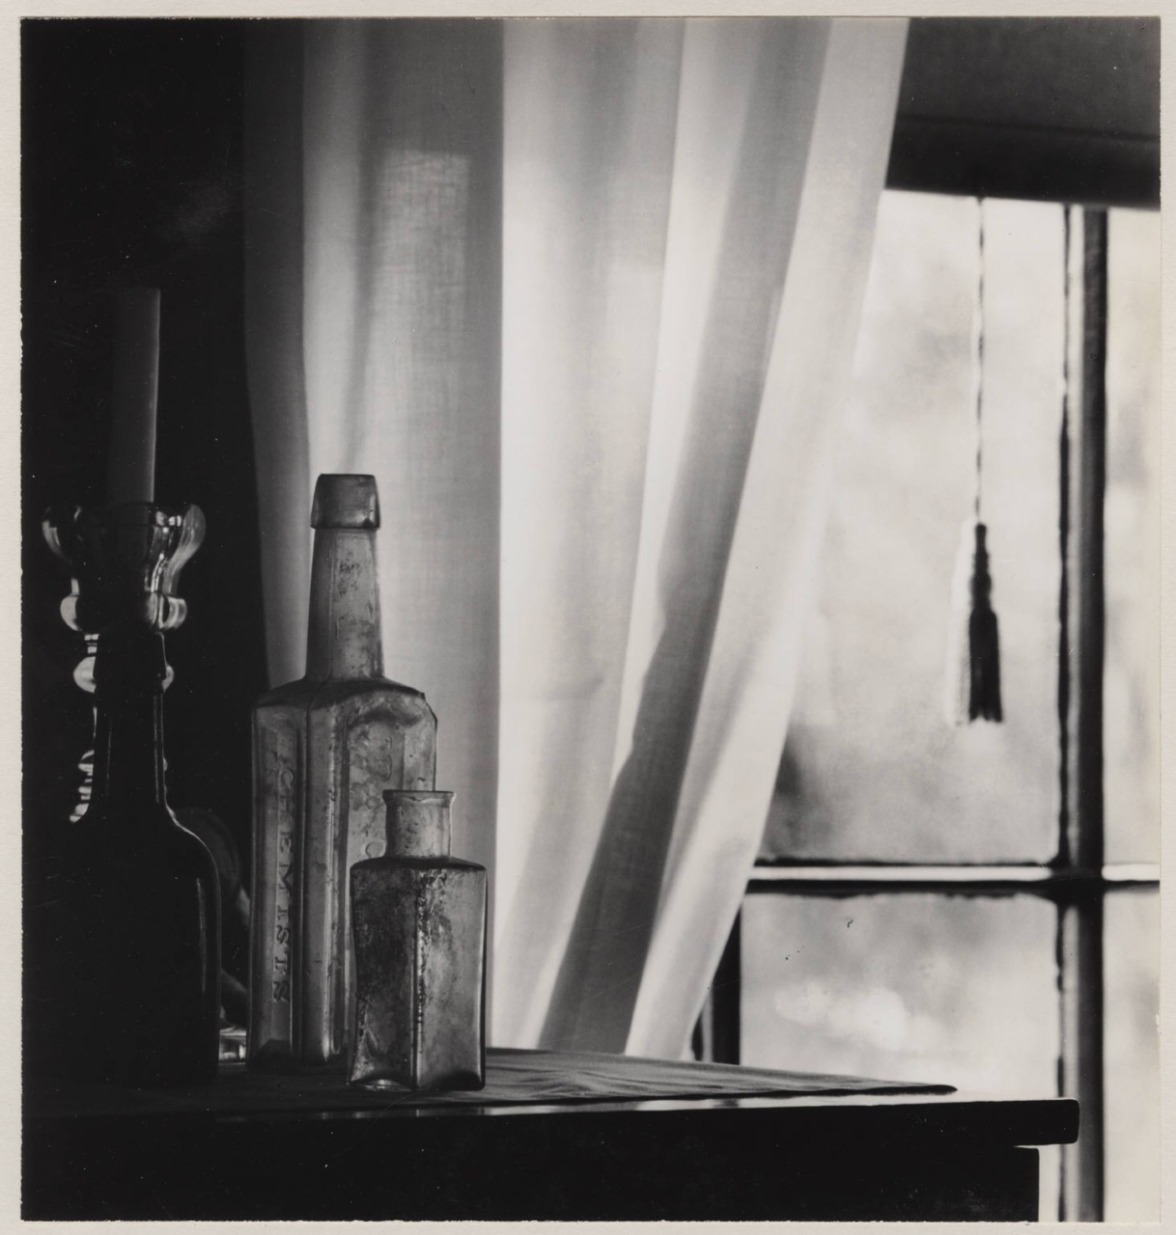 David Plowden - Lincoln's bedroom - 1964